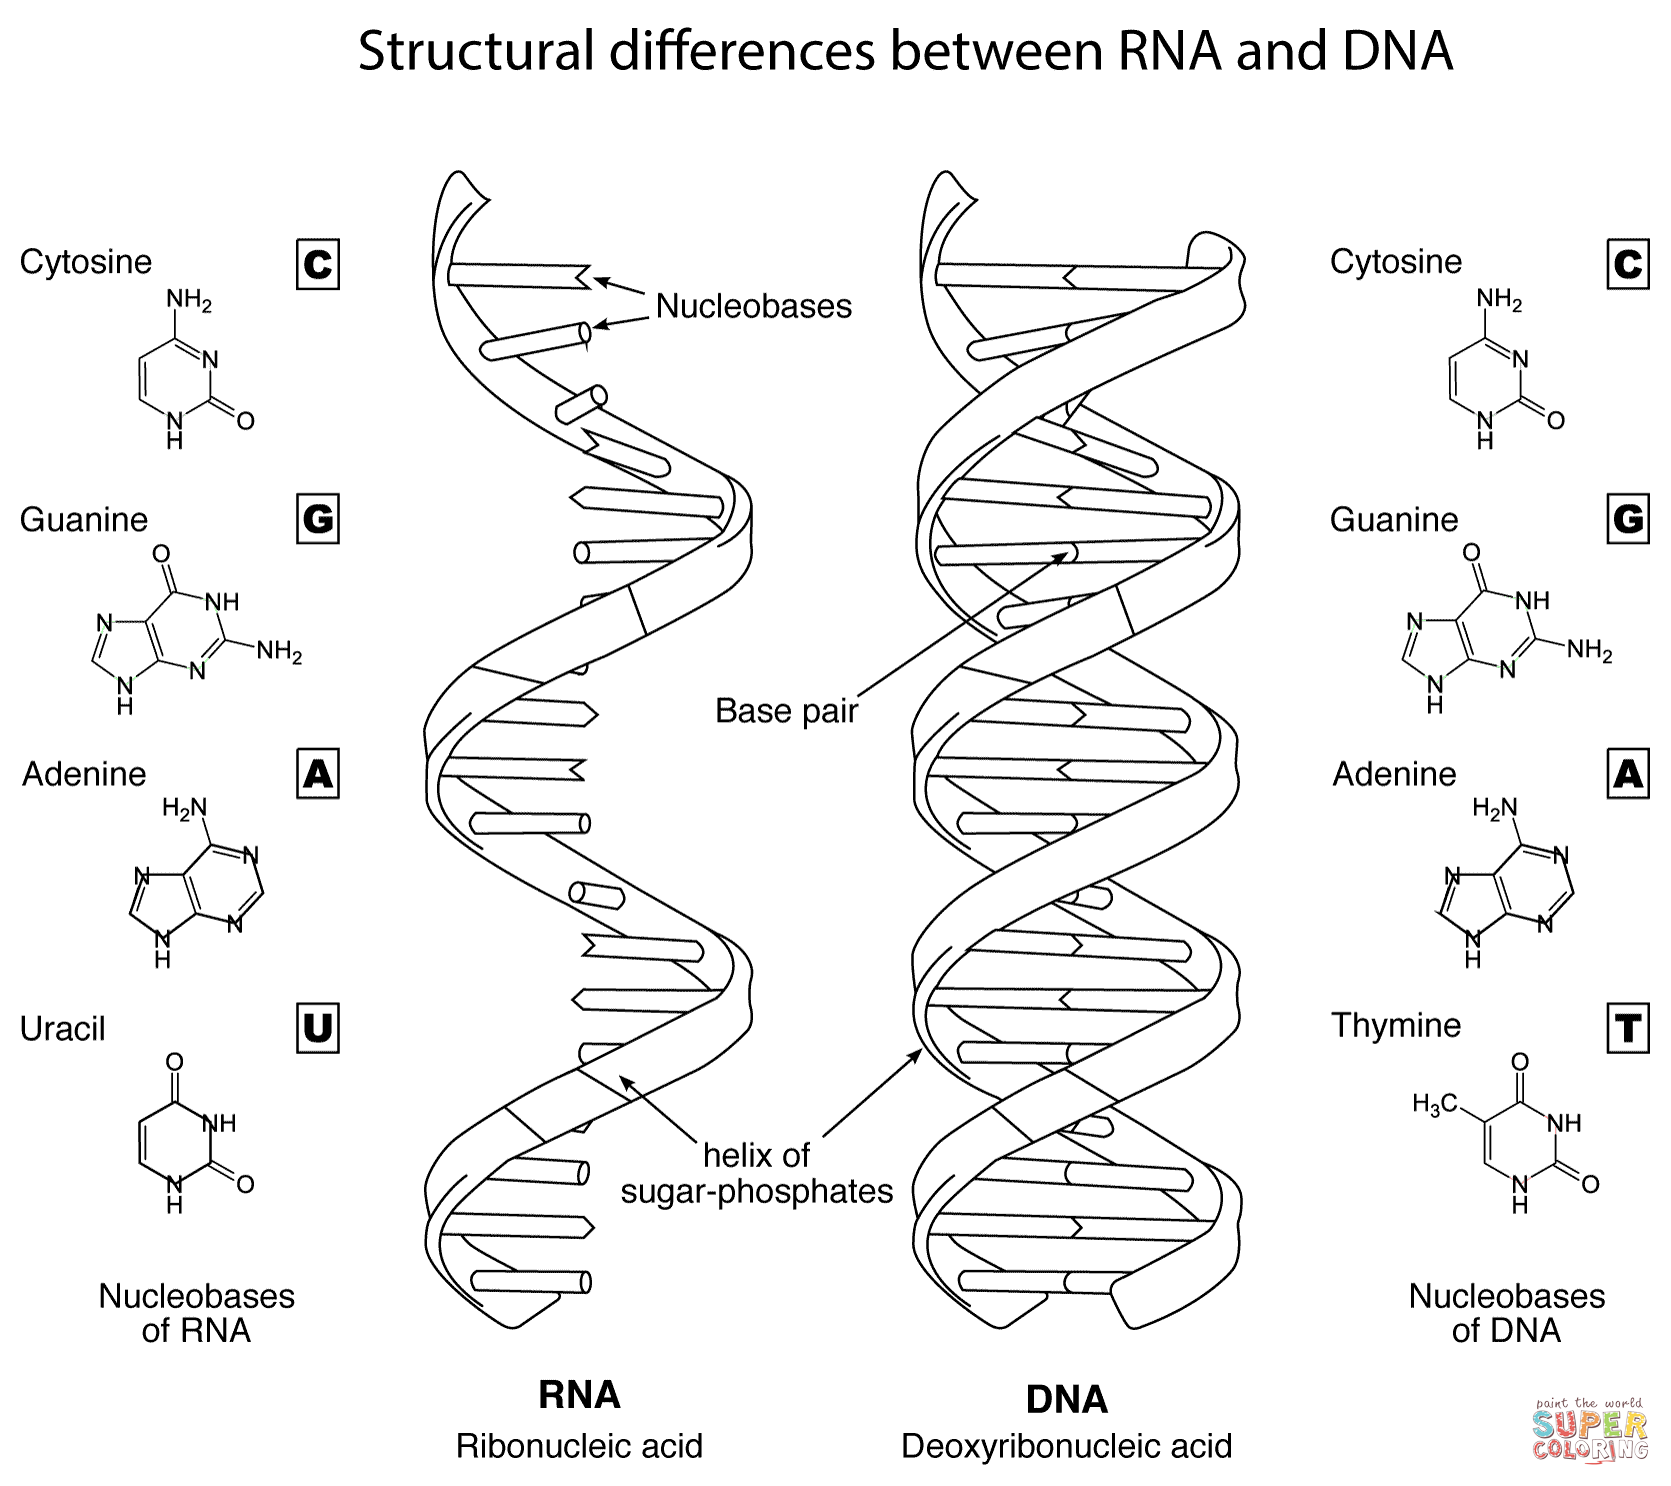 dna diagram worksheet cat arteries and veins structural differences between rna coloring page